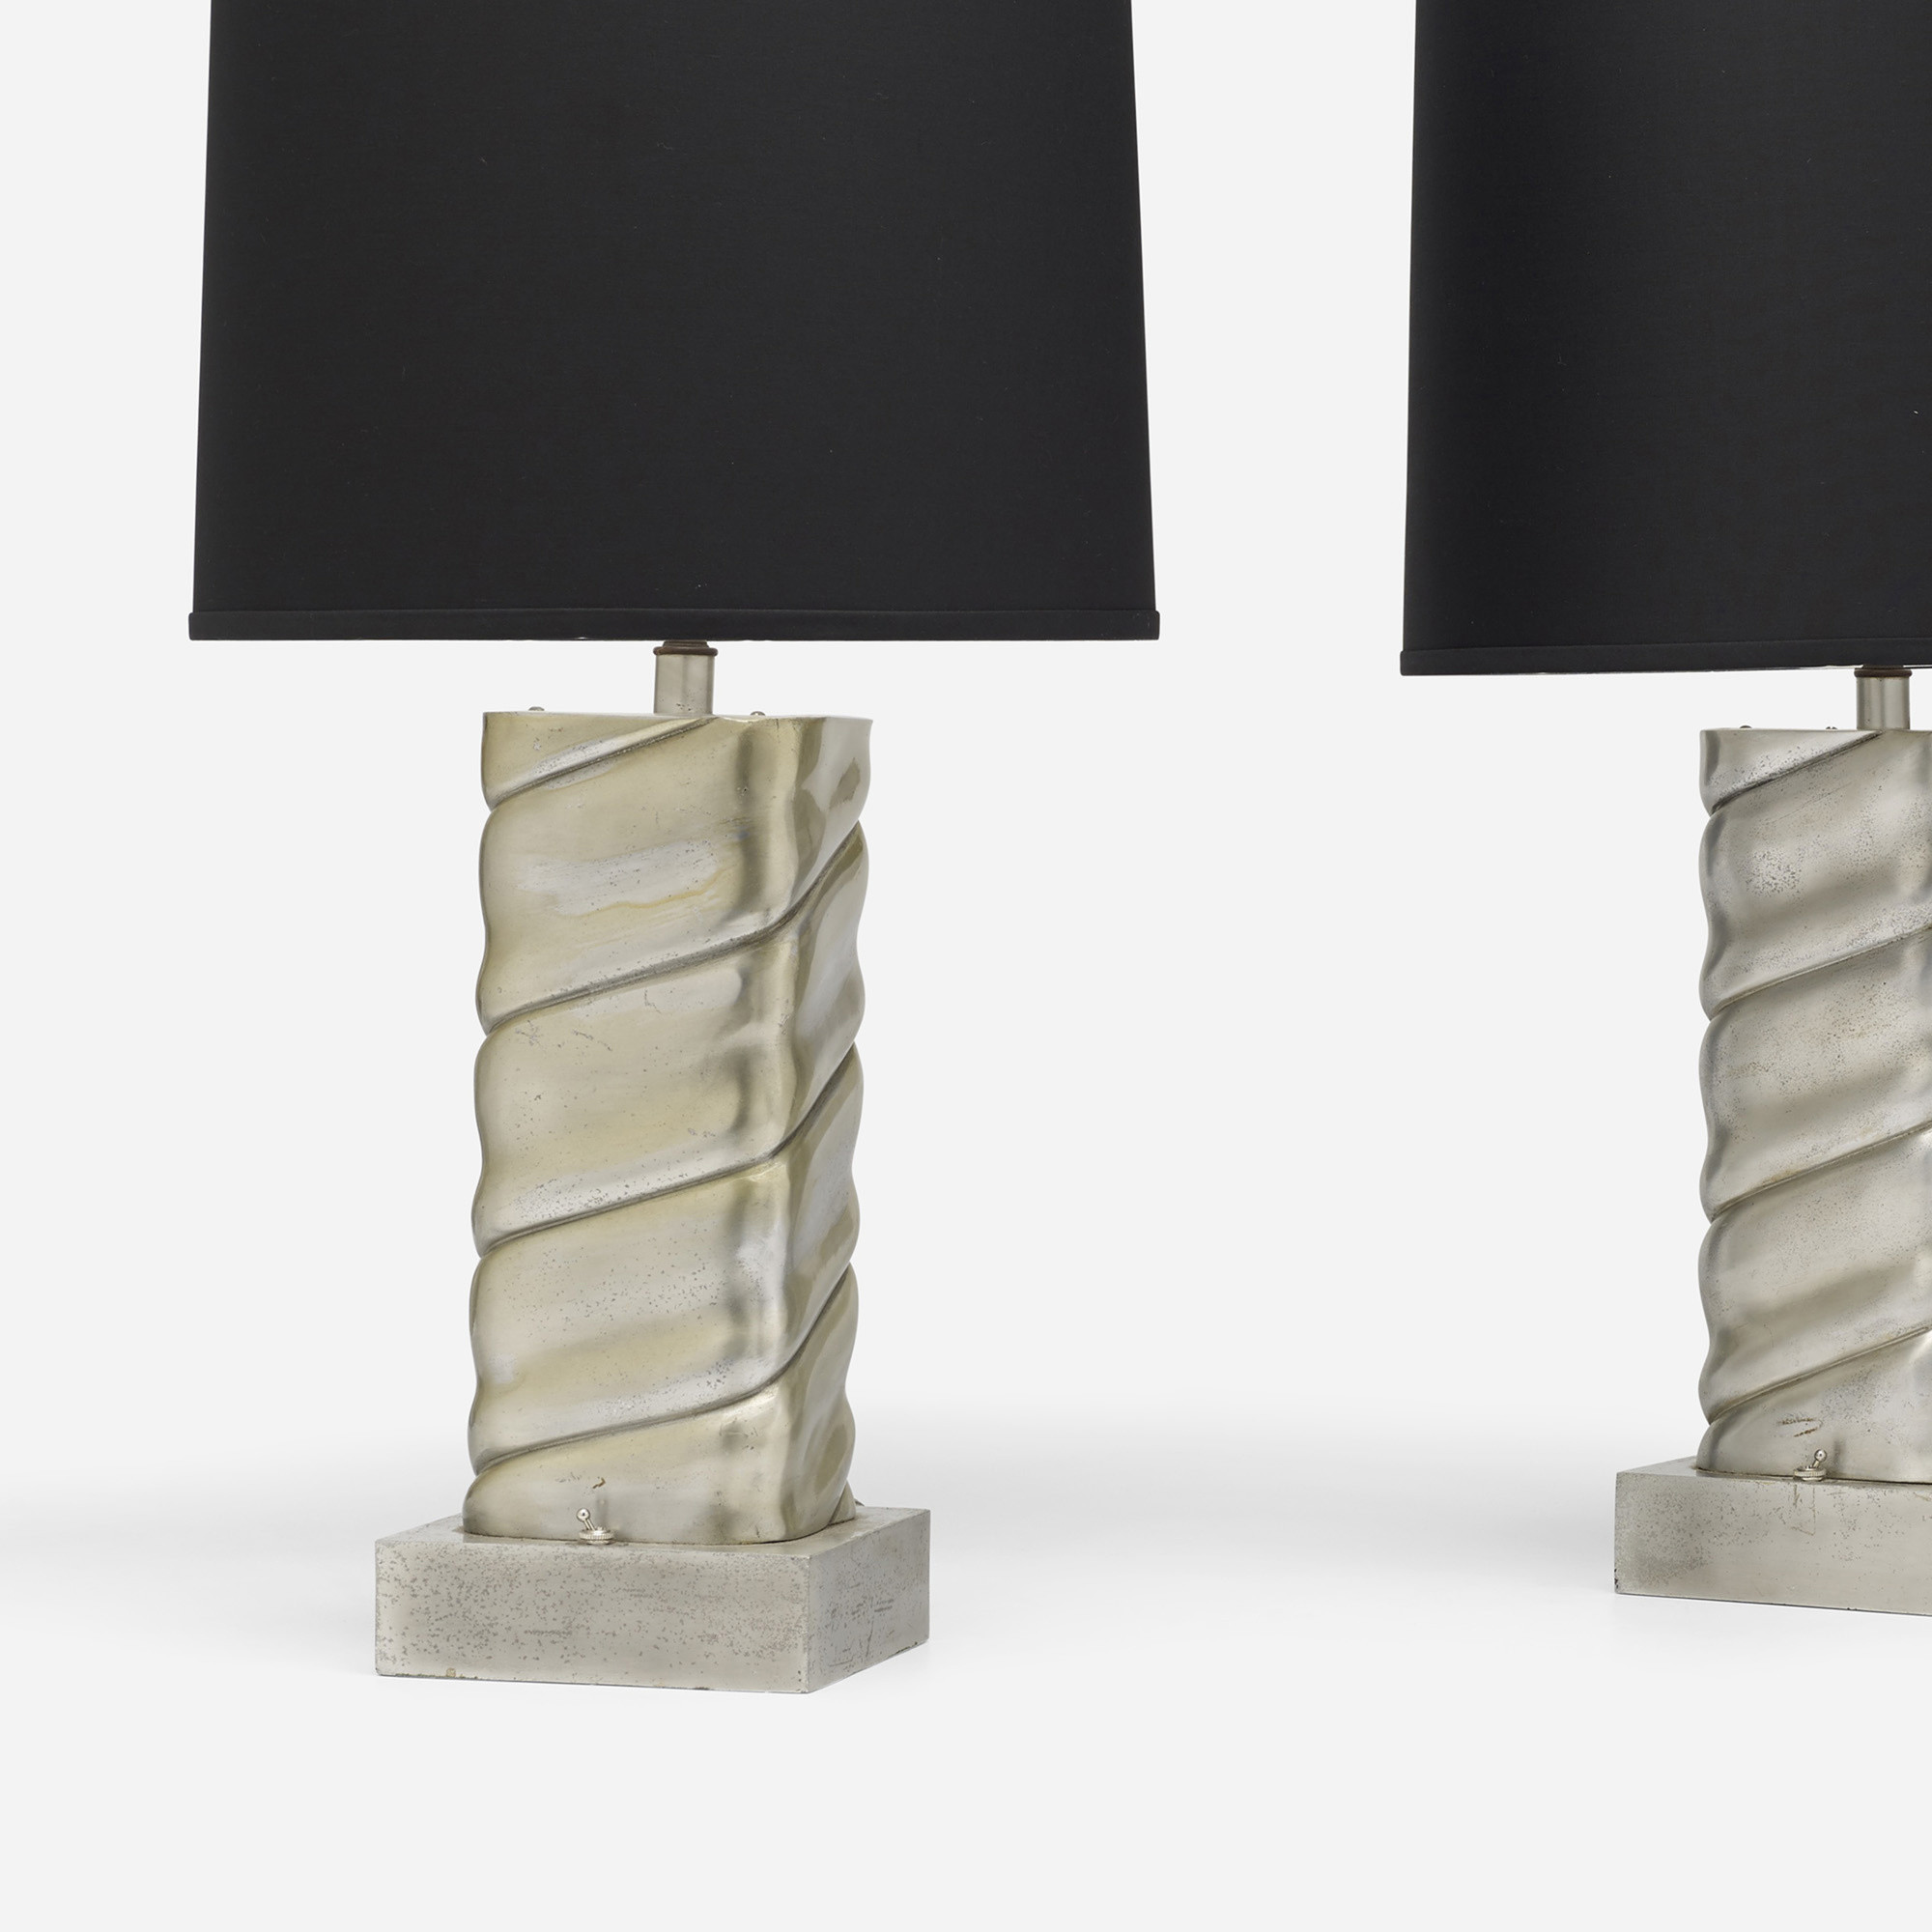 592: Modern / table lamps, pair (2 of 3)